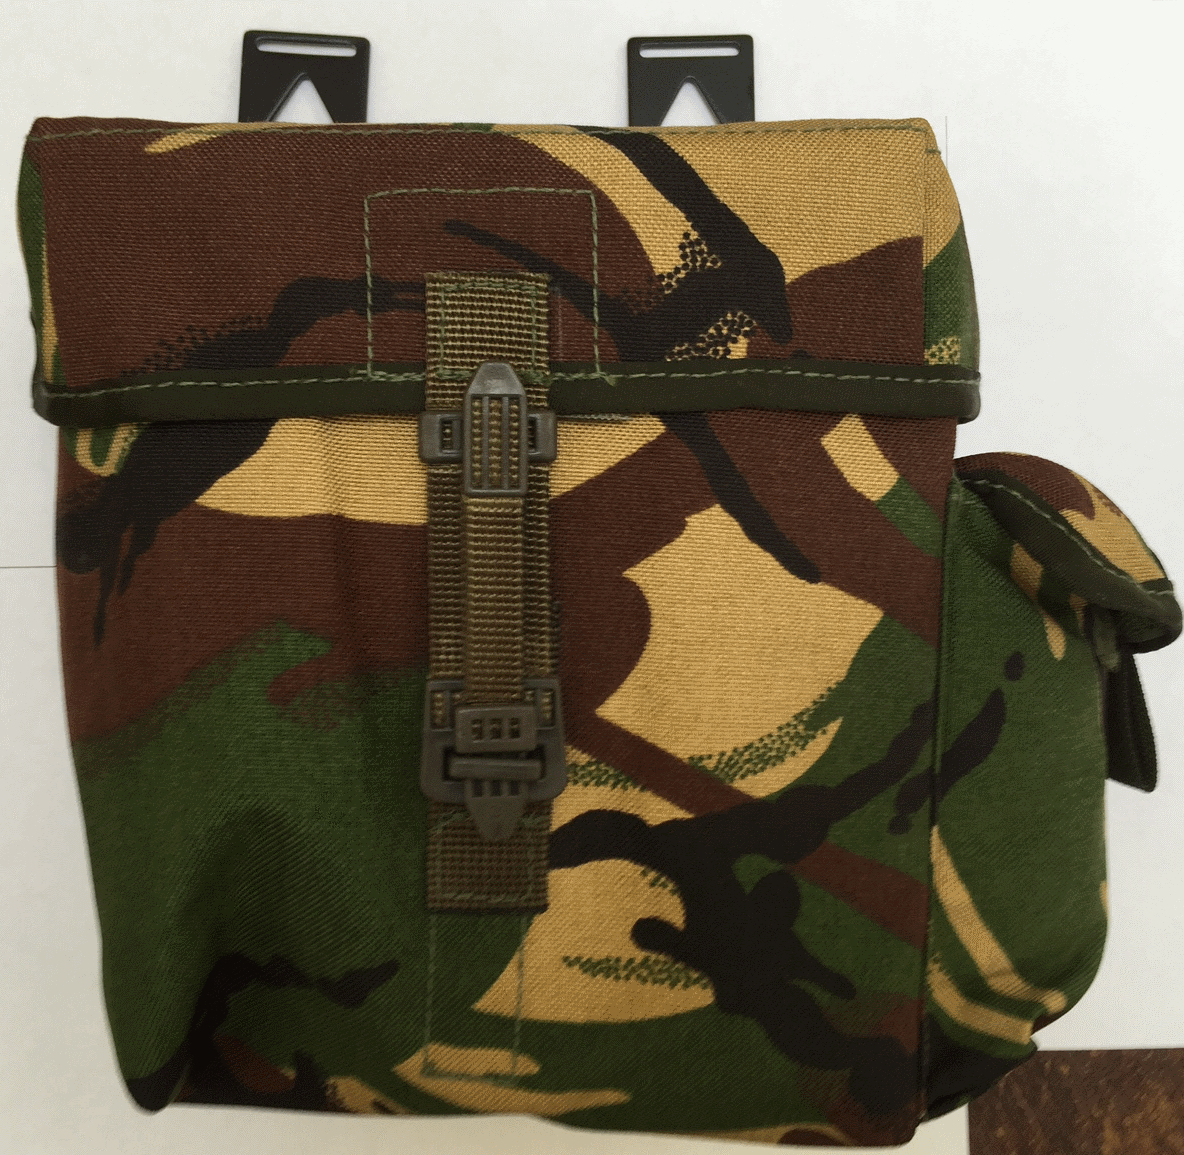 NEW/UNISSUED British army surplus DPM camo pouch PLCE webbing